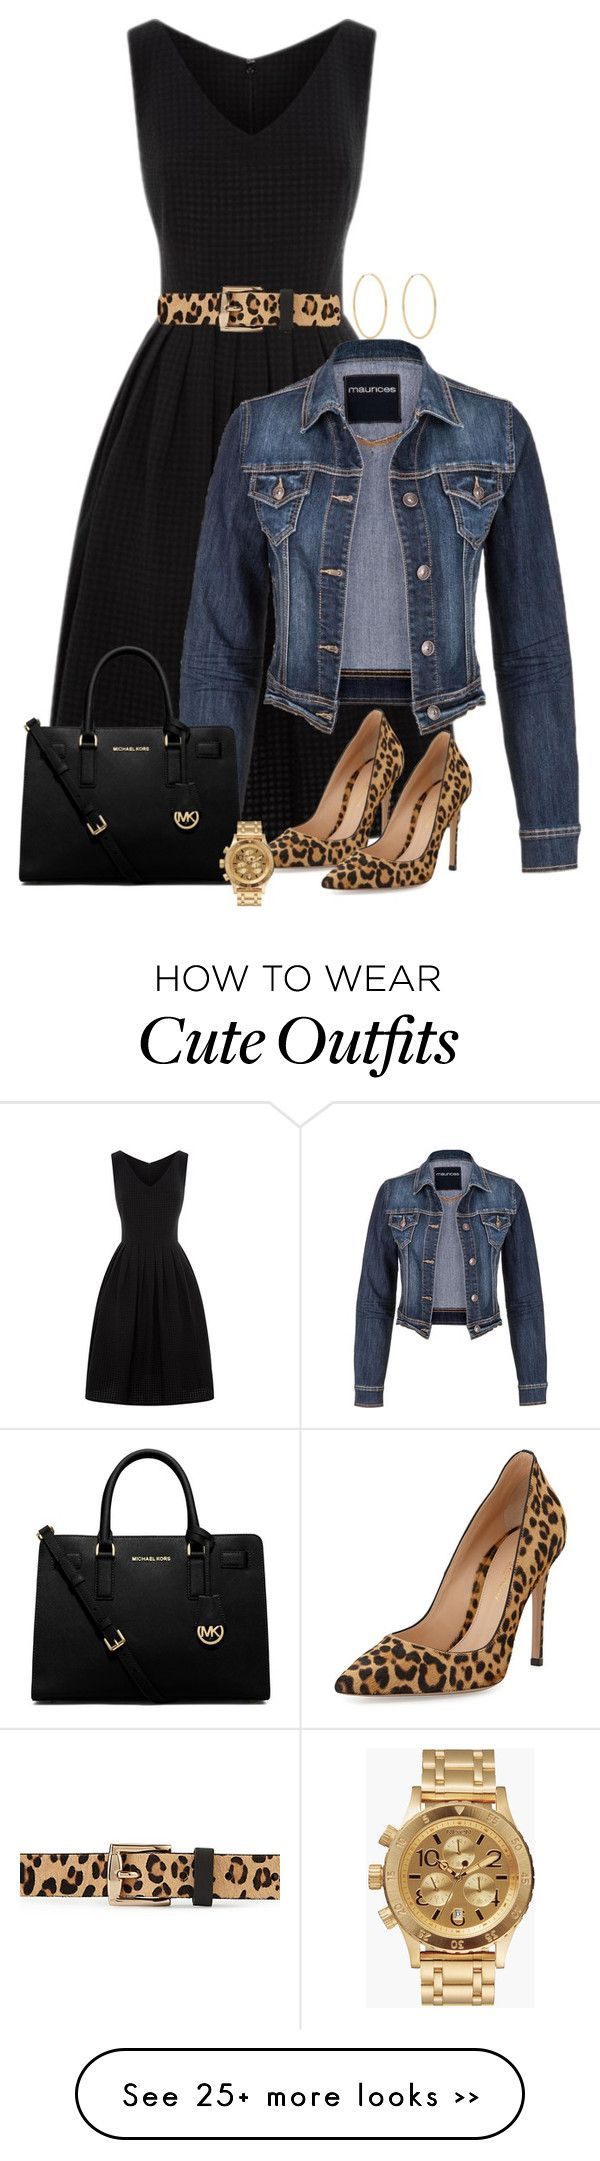 """""""Black Dress and Leopard Shoes (OUTFIT ONLY!)"""" by ginga1203 on Polyvore"""